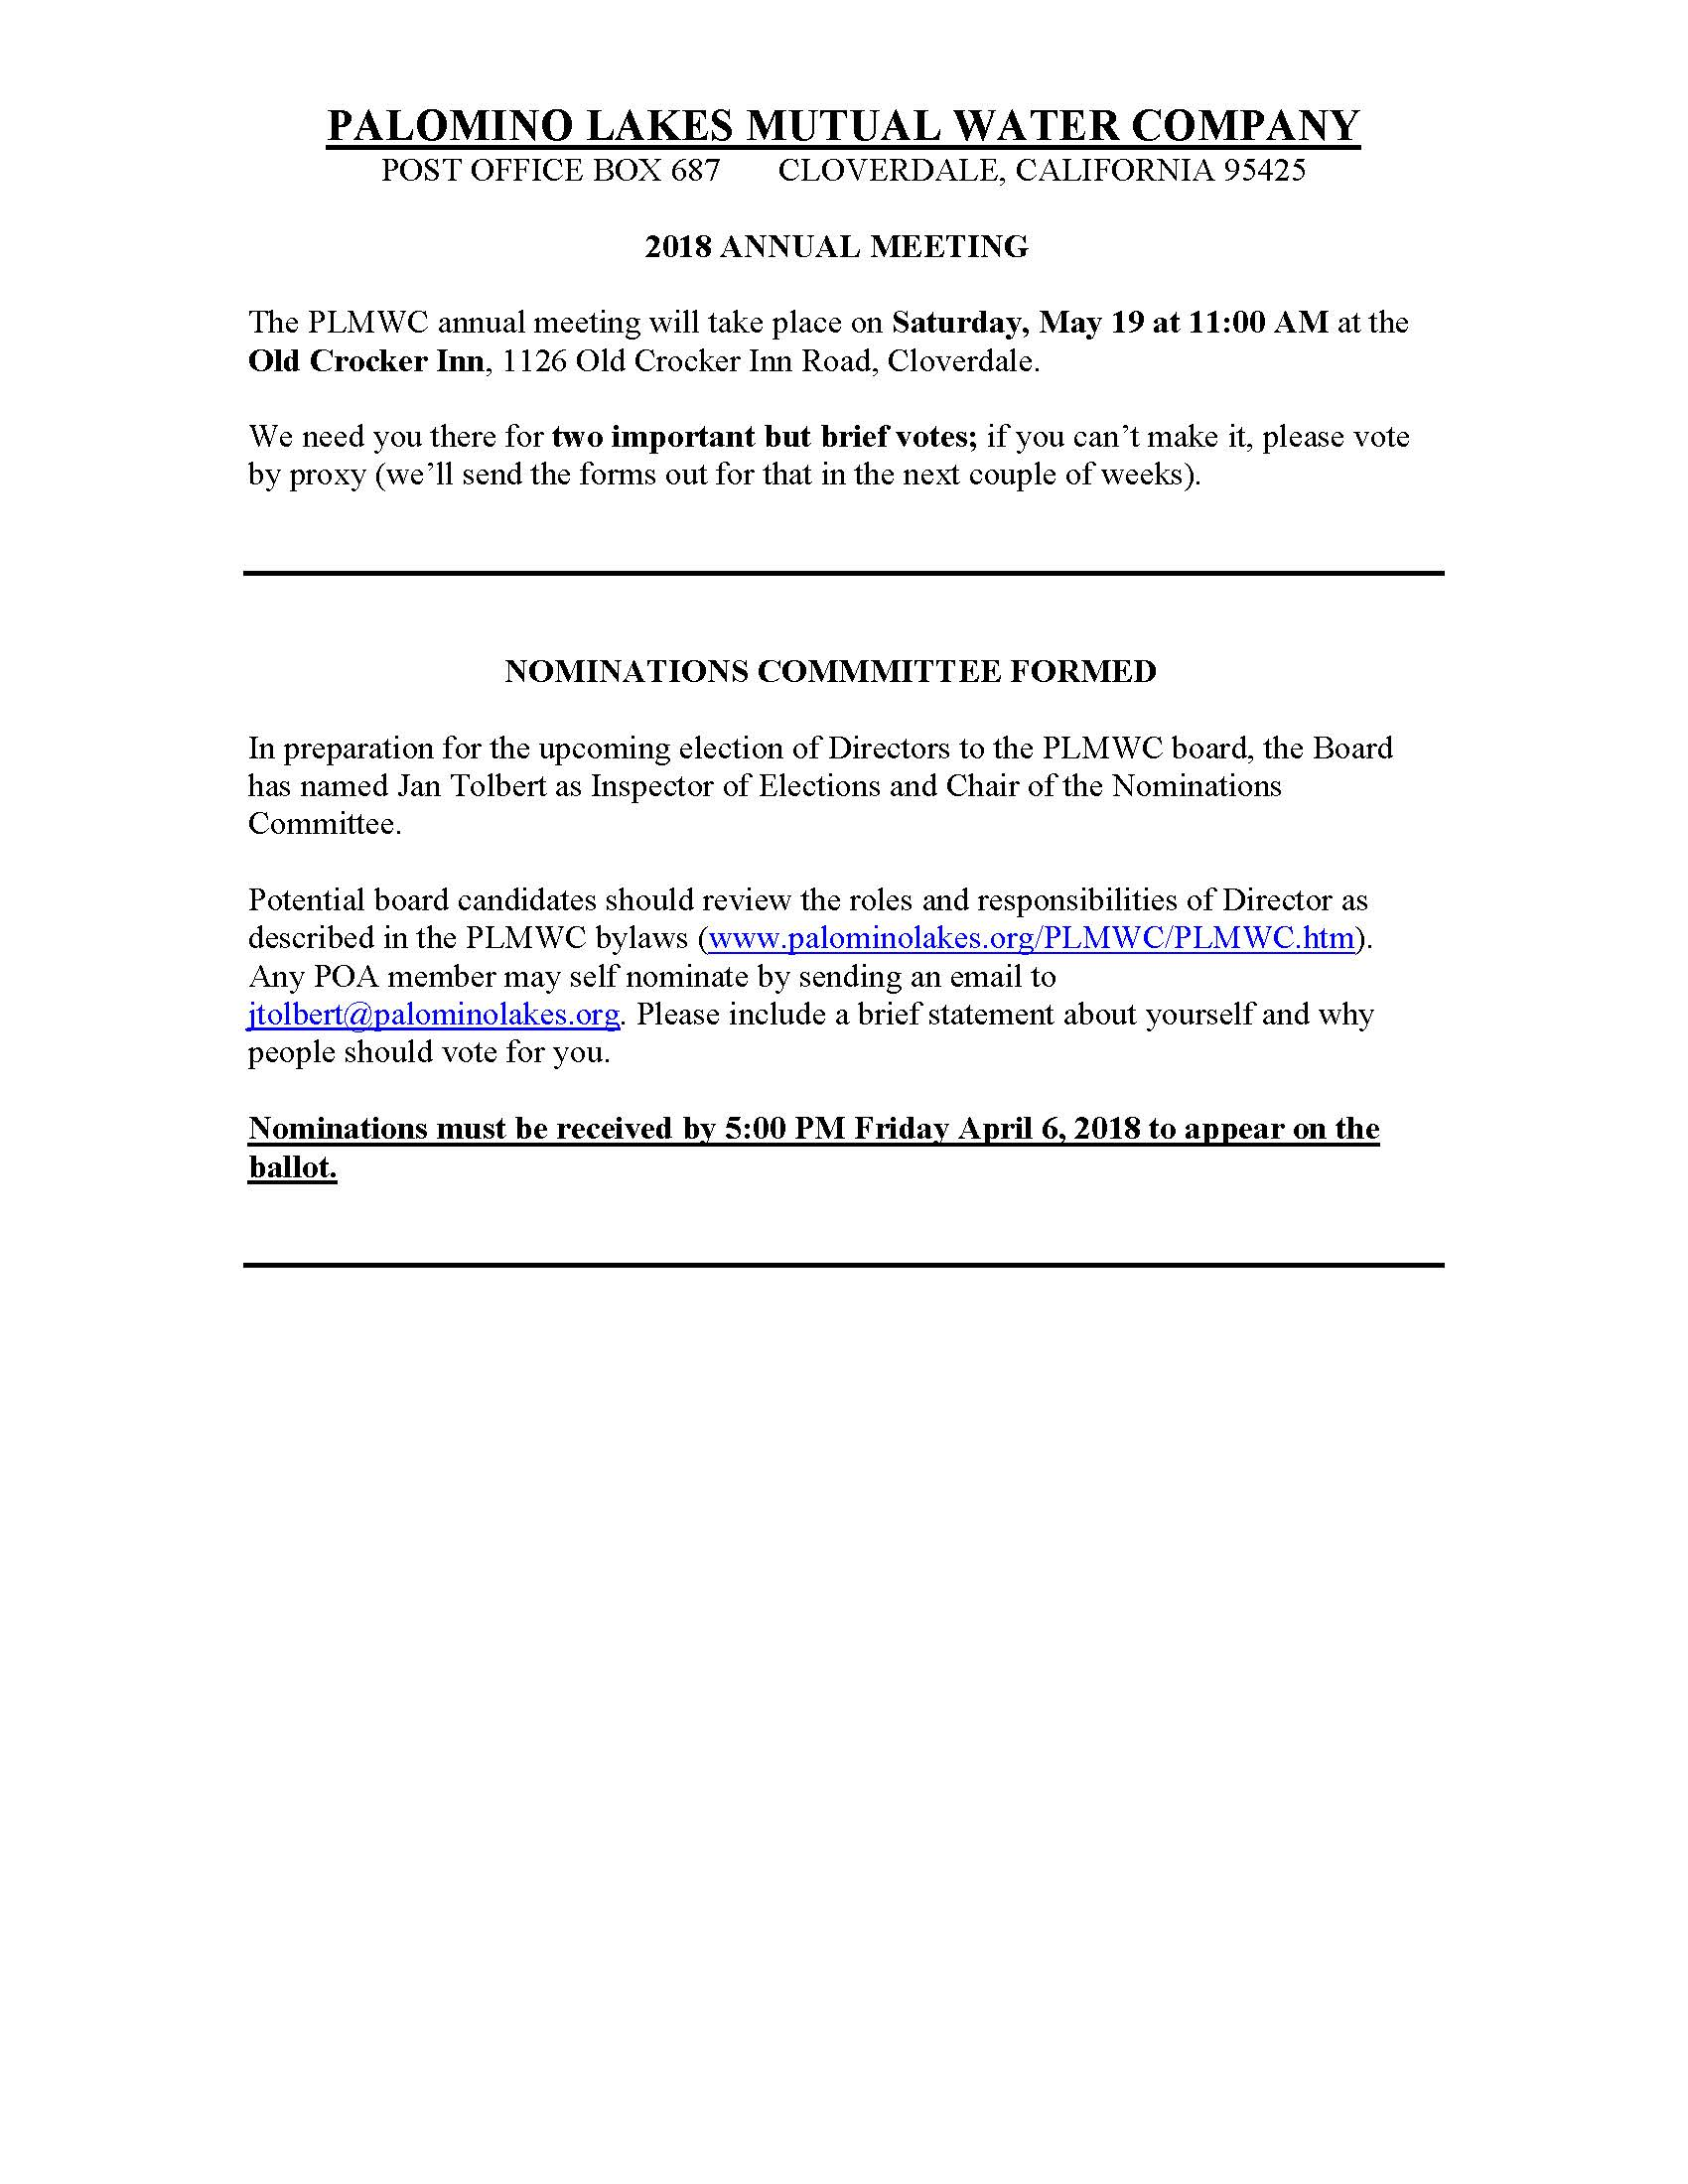 Palomino lakes mutual water company plmwc website notice of 2018 annual meeting election and call for nominations solutioingenieria Gallery